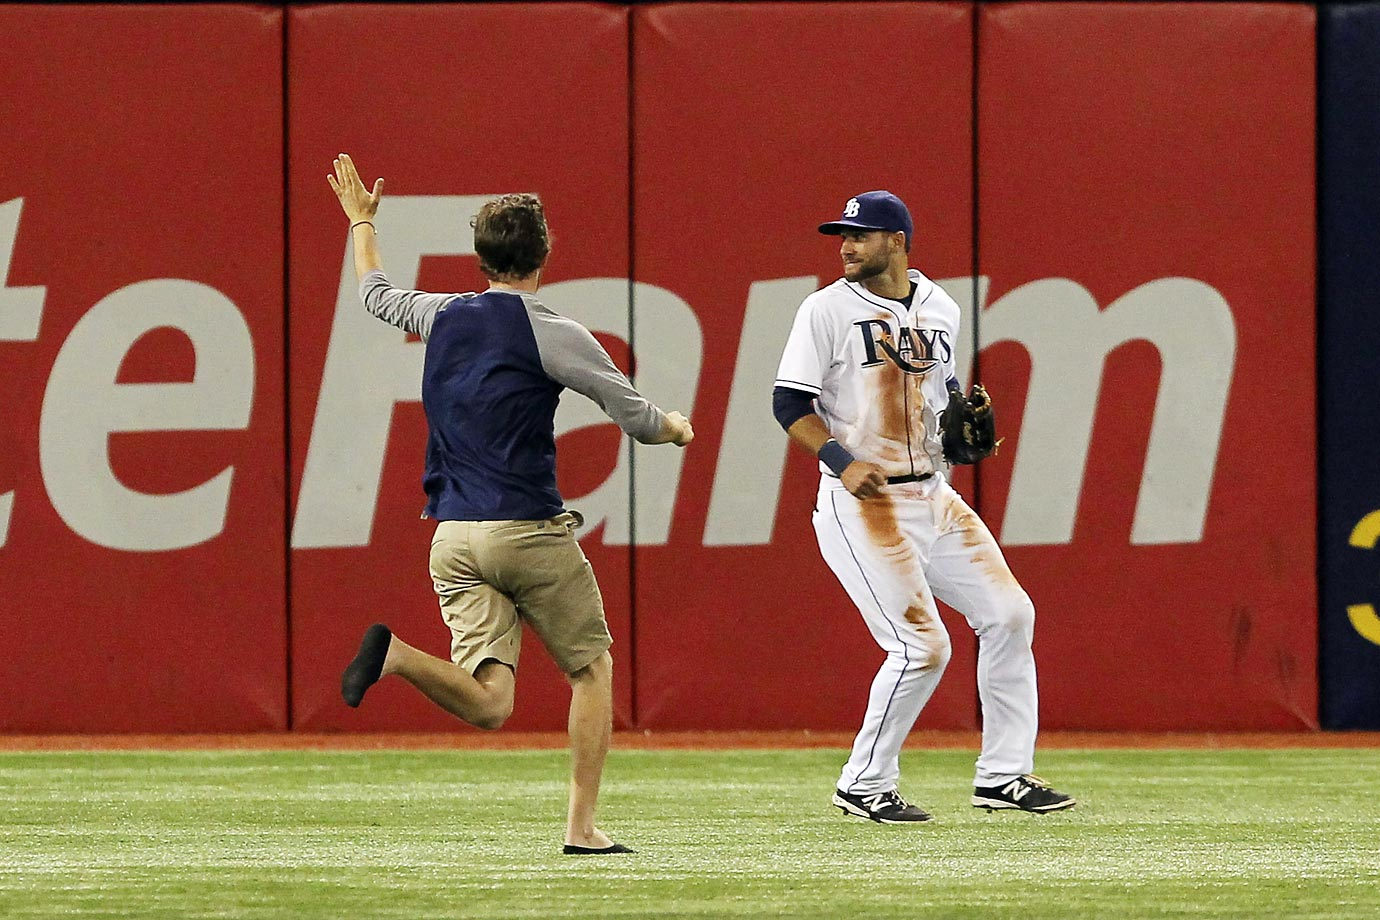 Kevin Kiermaier of the Rays does his best to avoid a Florida fan who ran on to the field in the 9th inning of their game against the Orioles.